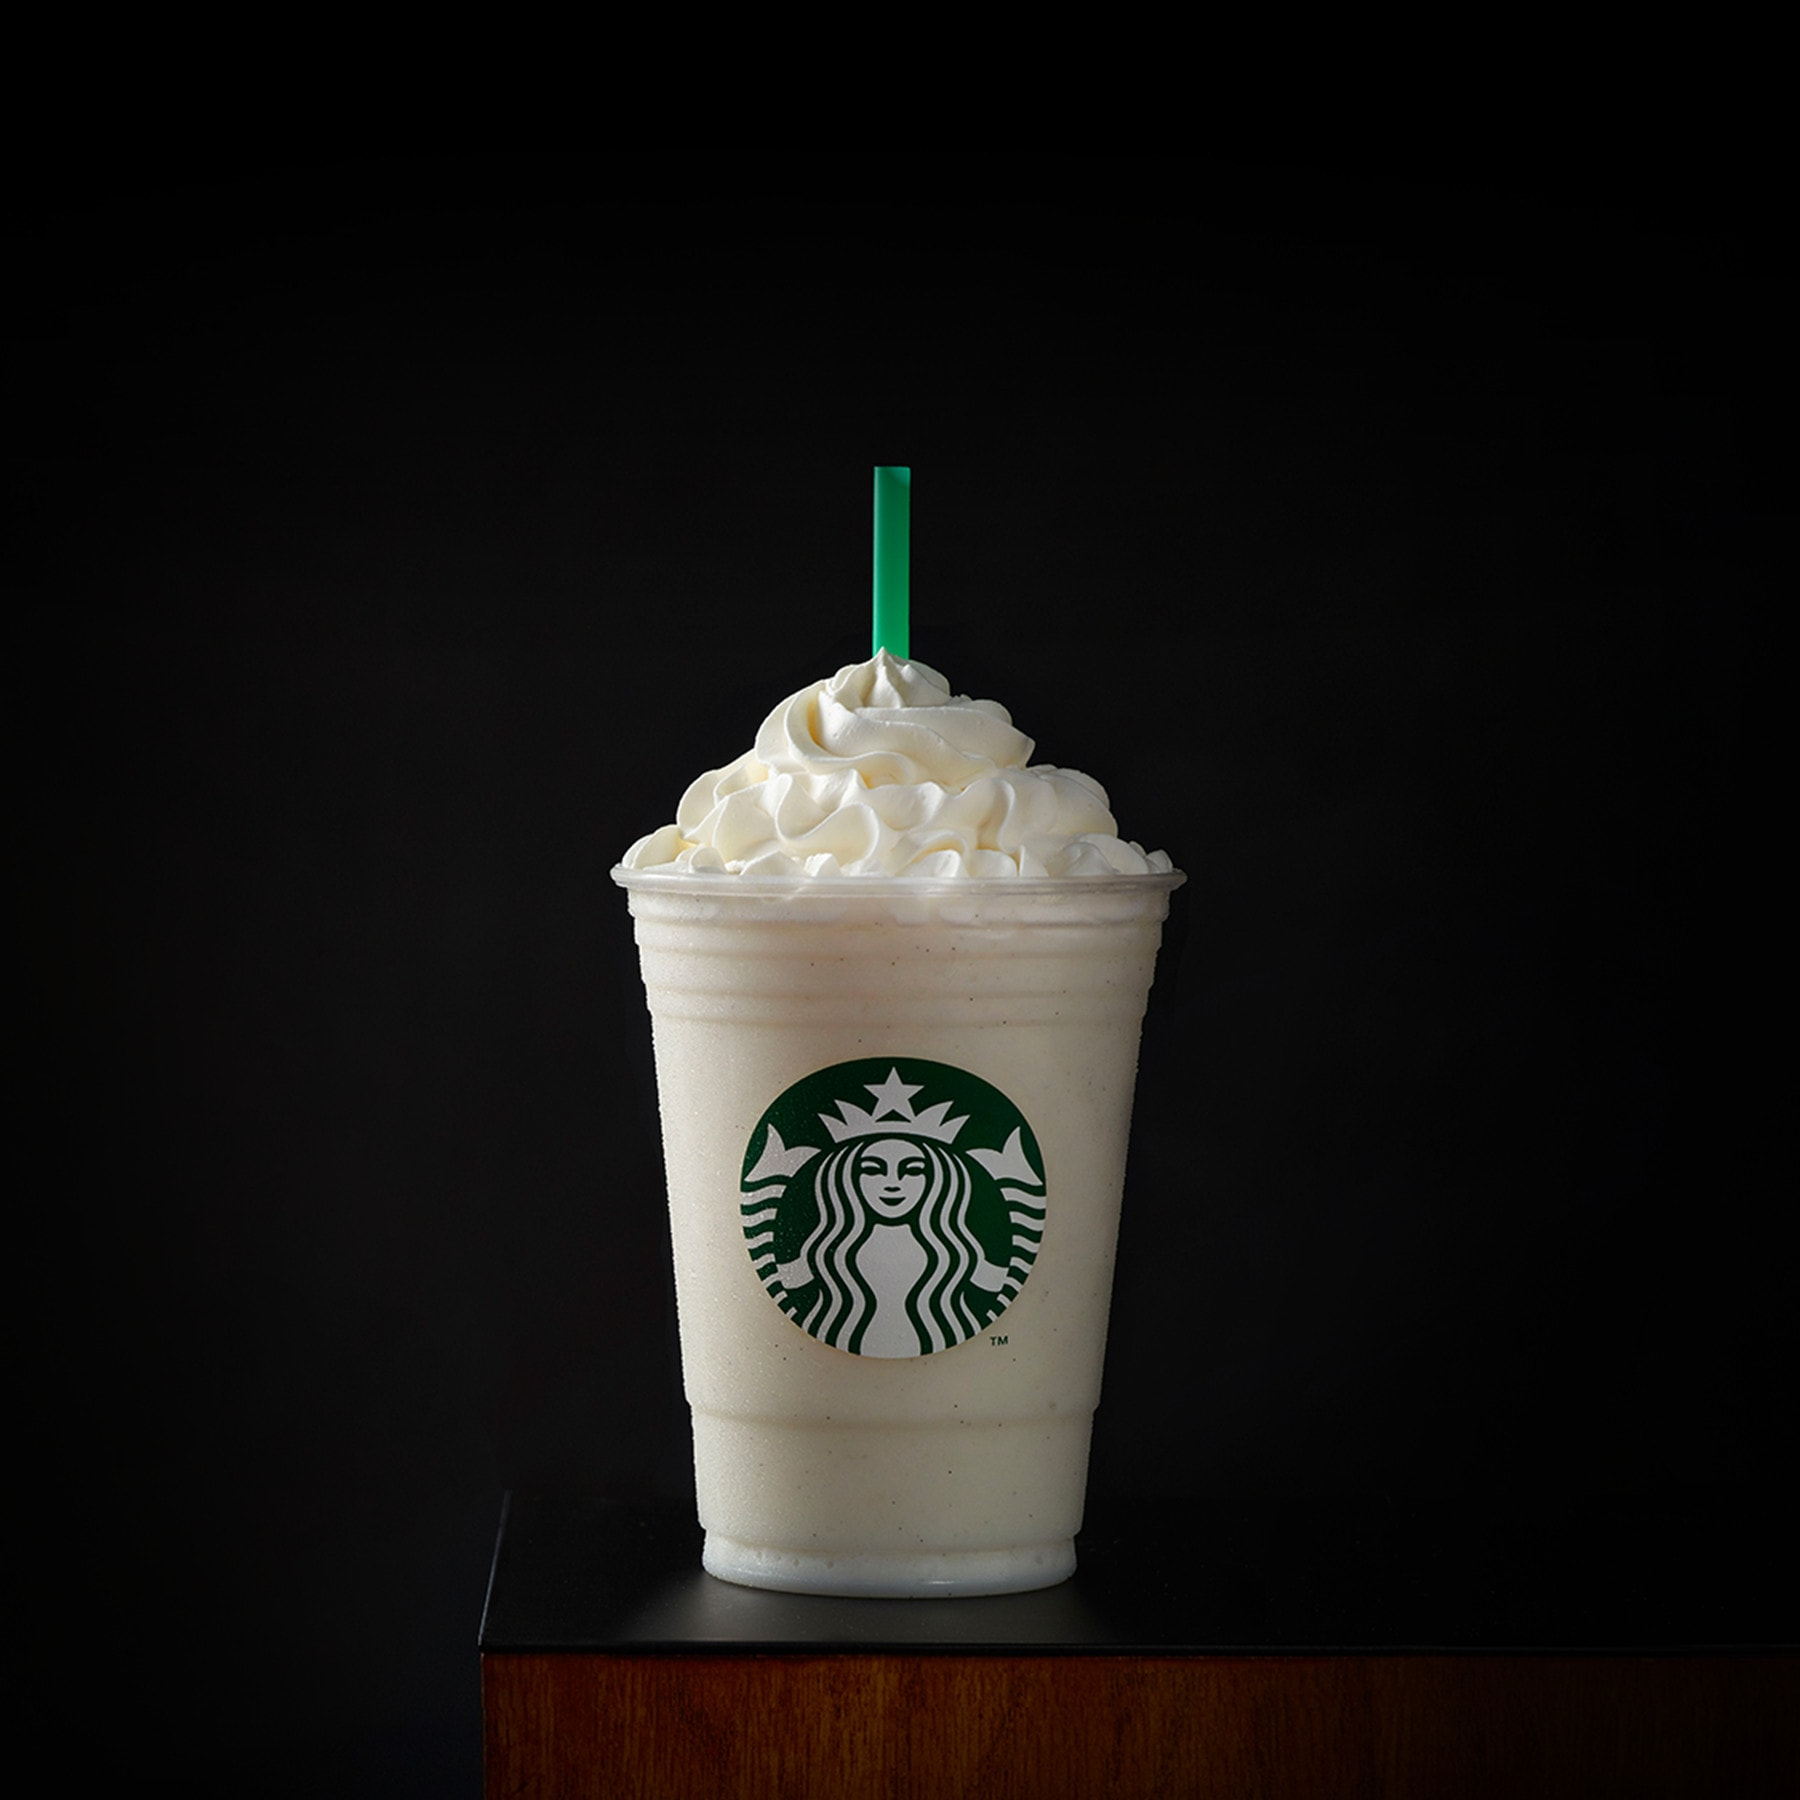 Start With The Vanilla Bean Creme FrappuccinoR Add Hazelnut Syrup Blend Together And Finish Whipped Cream A Sip Of Cake Flavor In Every Bite